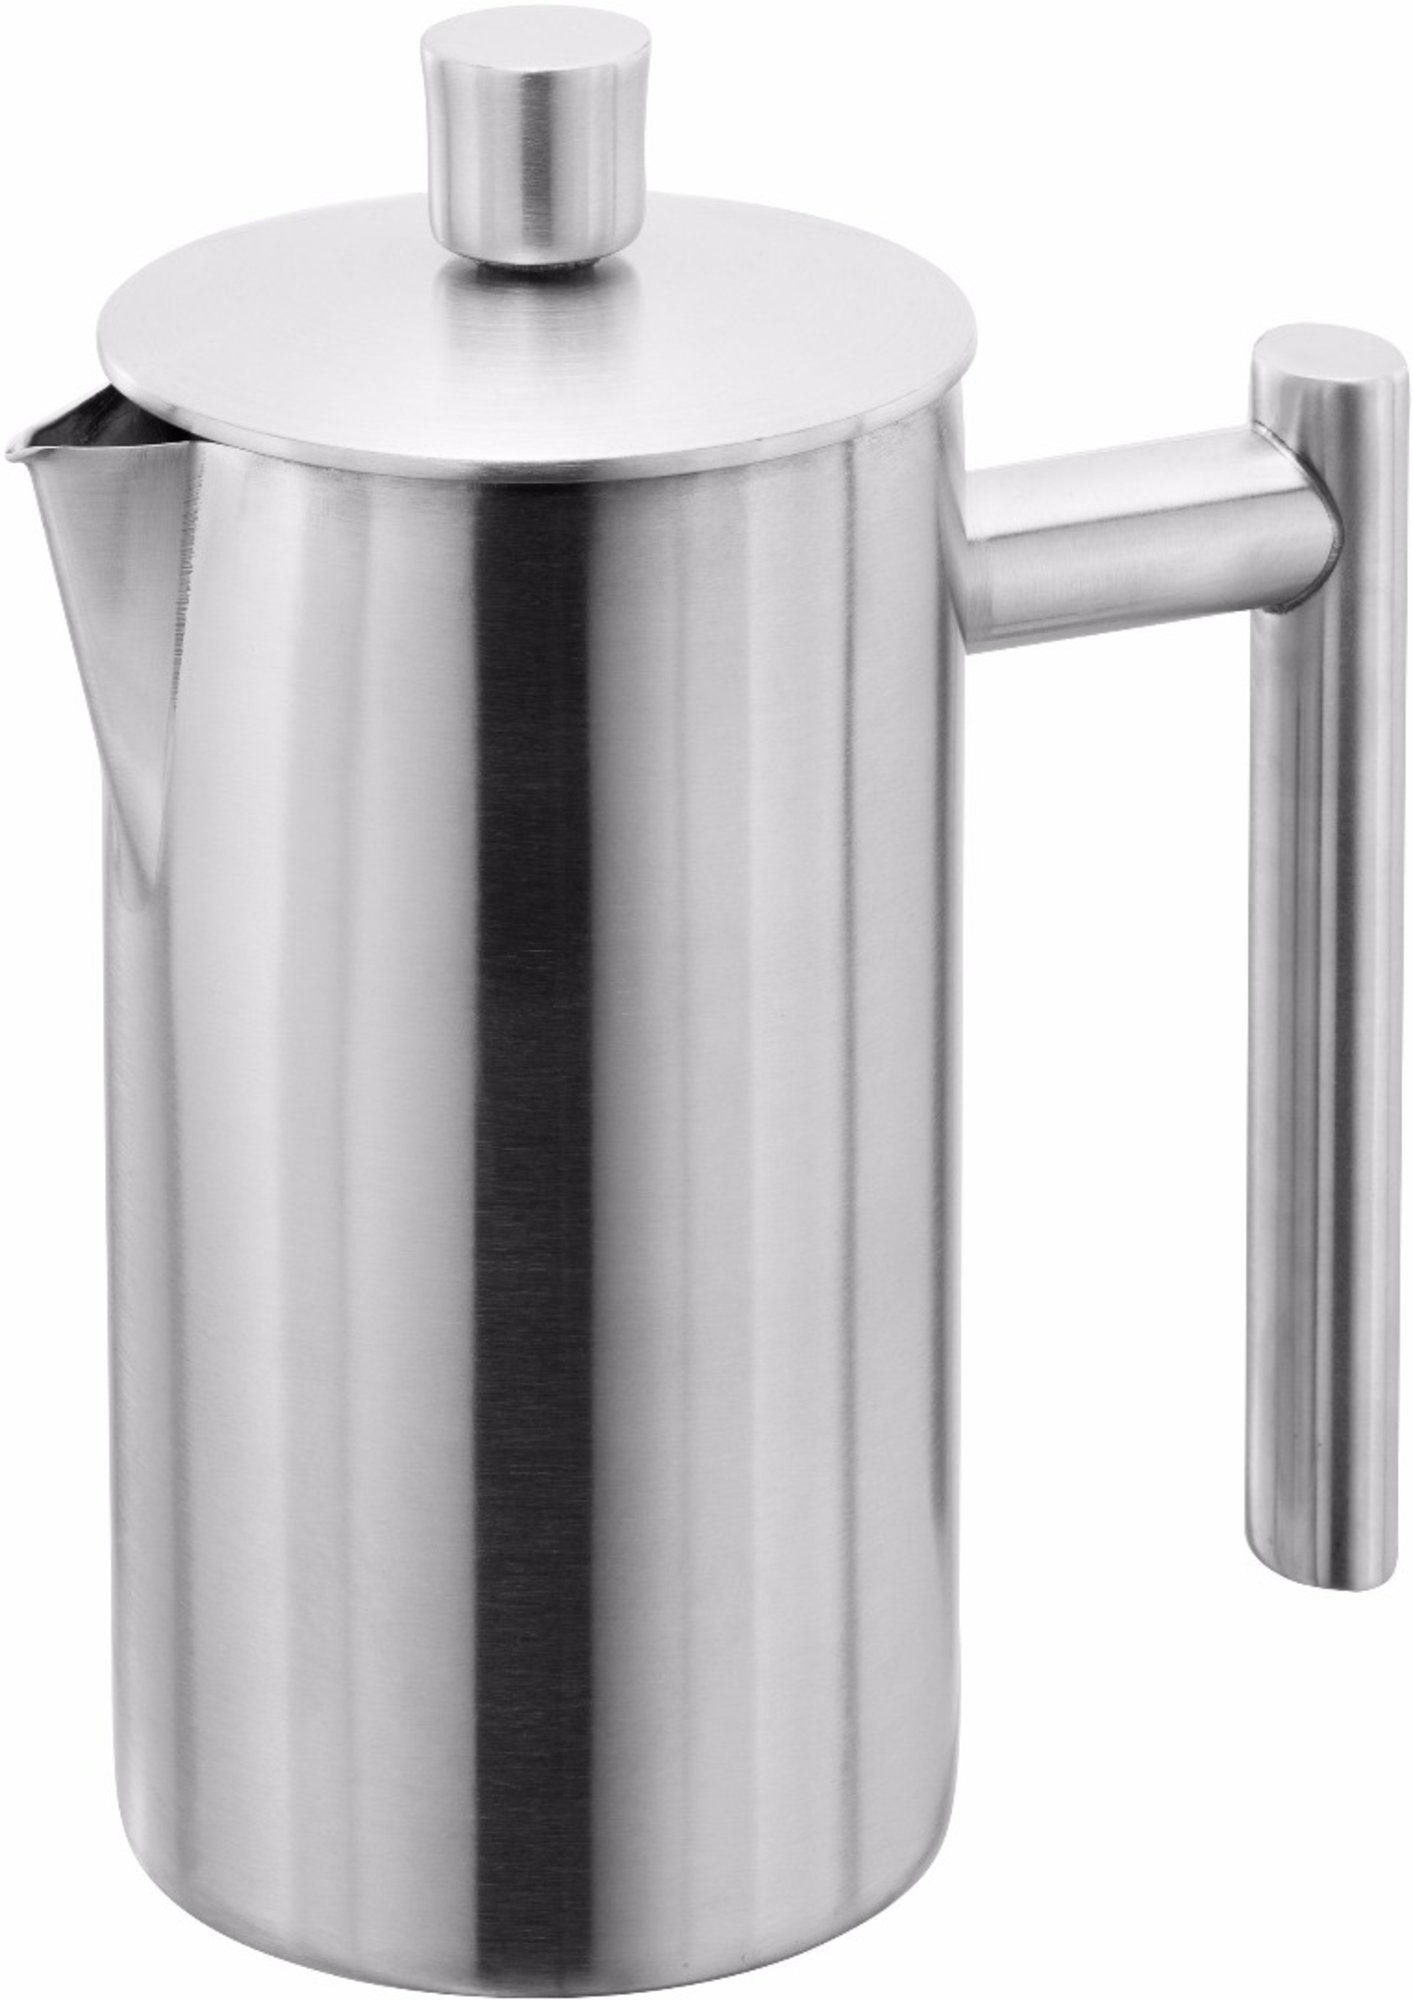 Horwood Cafetiere Doublewall 900ml 8 cup